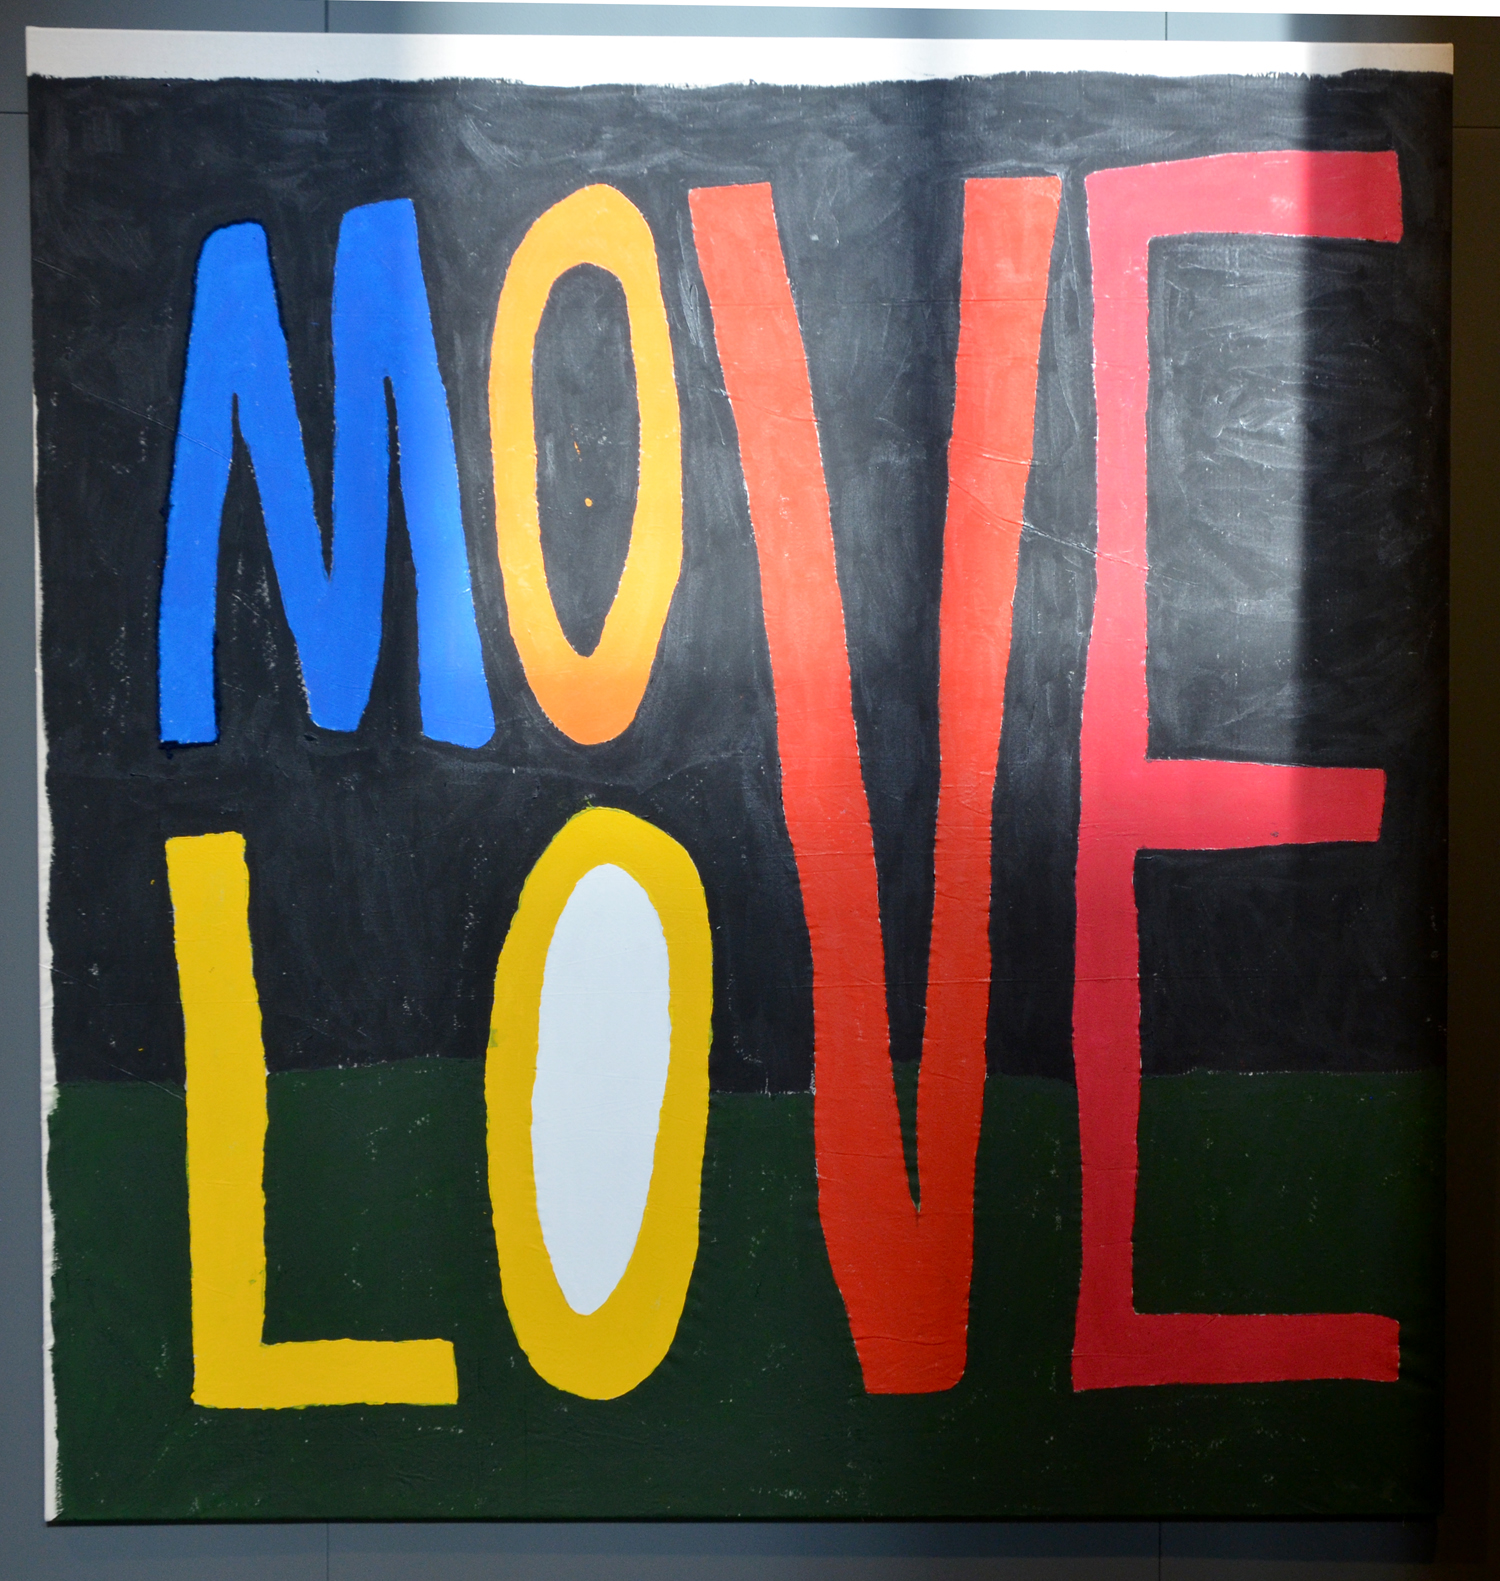 Quint Hartman-Move Love-200x200cm-2013